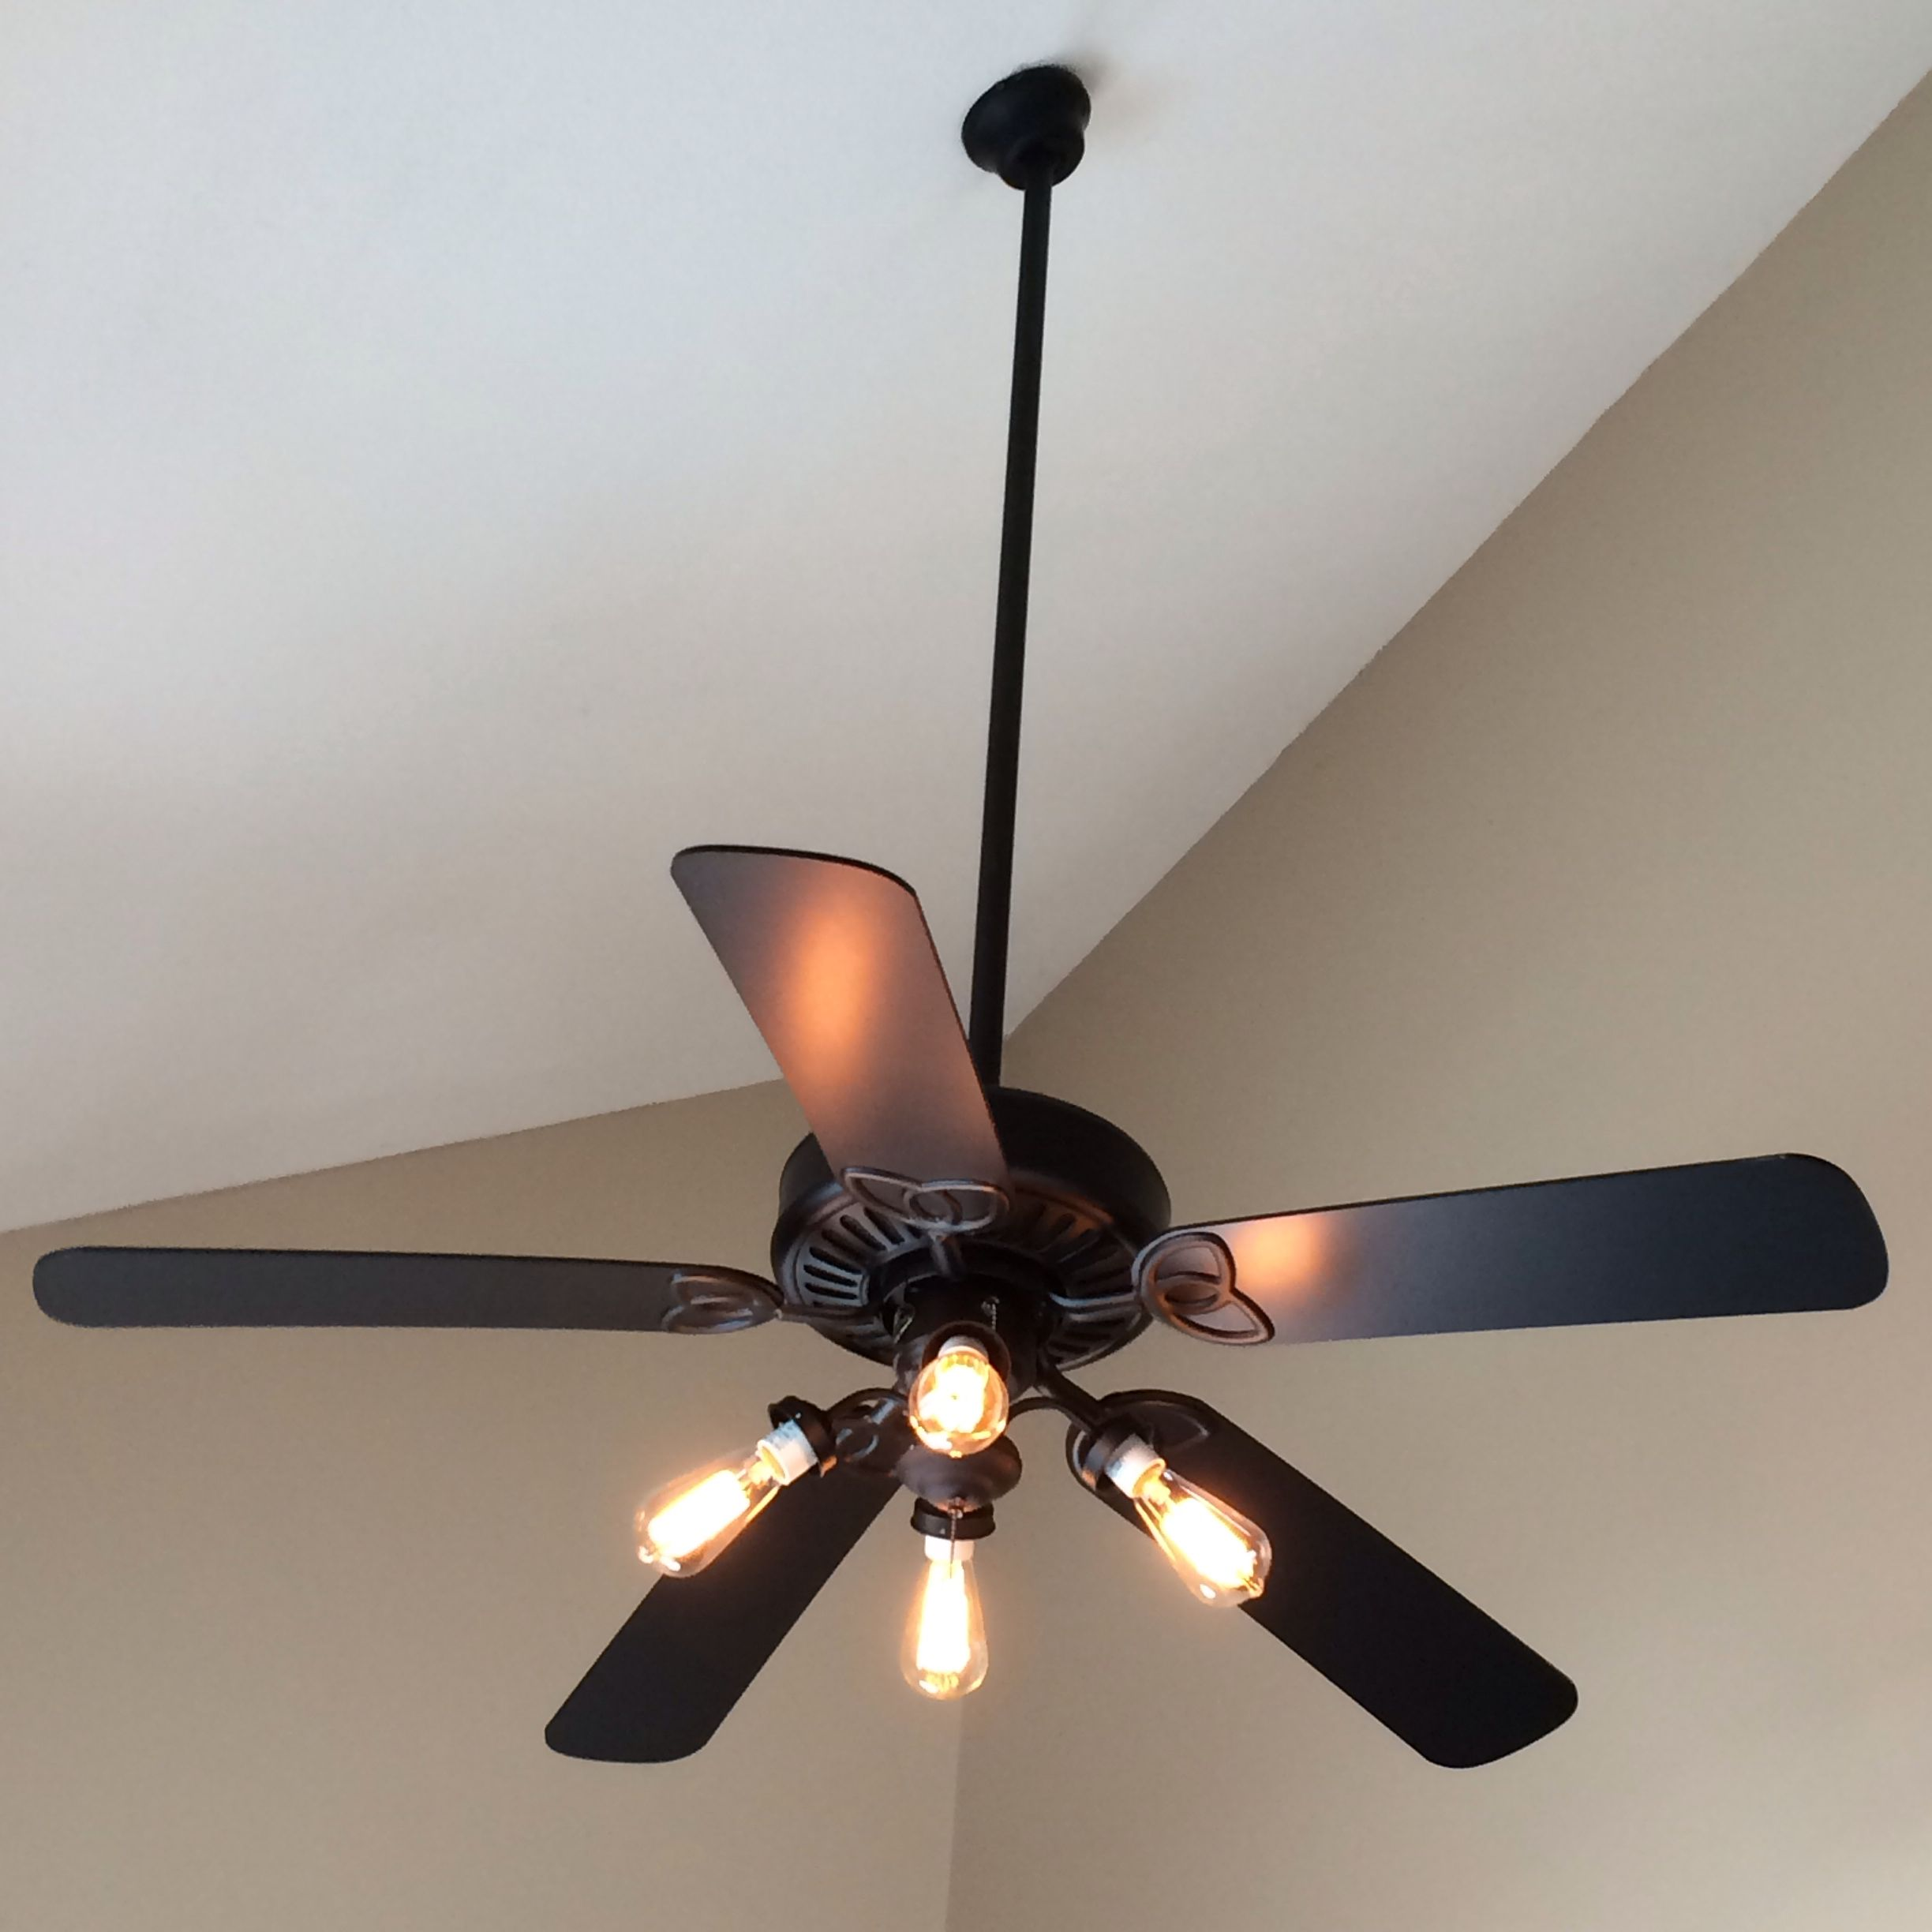 Quick Ceiling Fan Makeover Simply Remove The Shades And S Use Edison Bulbs For A More Modern Industrial Look